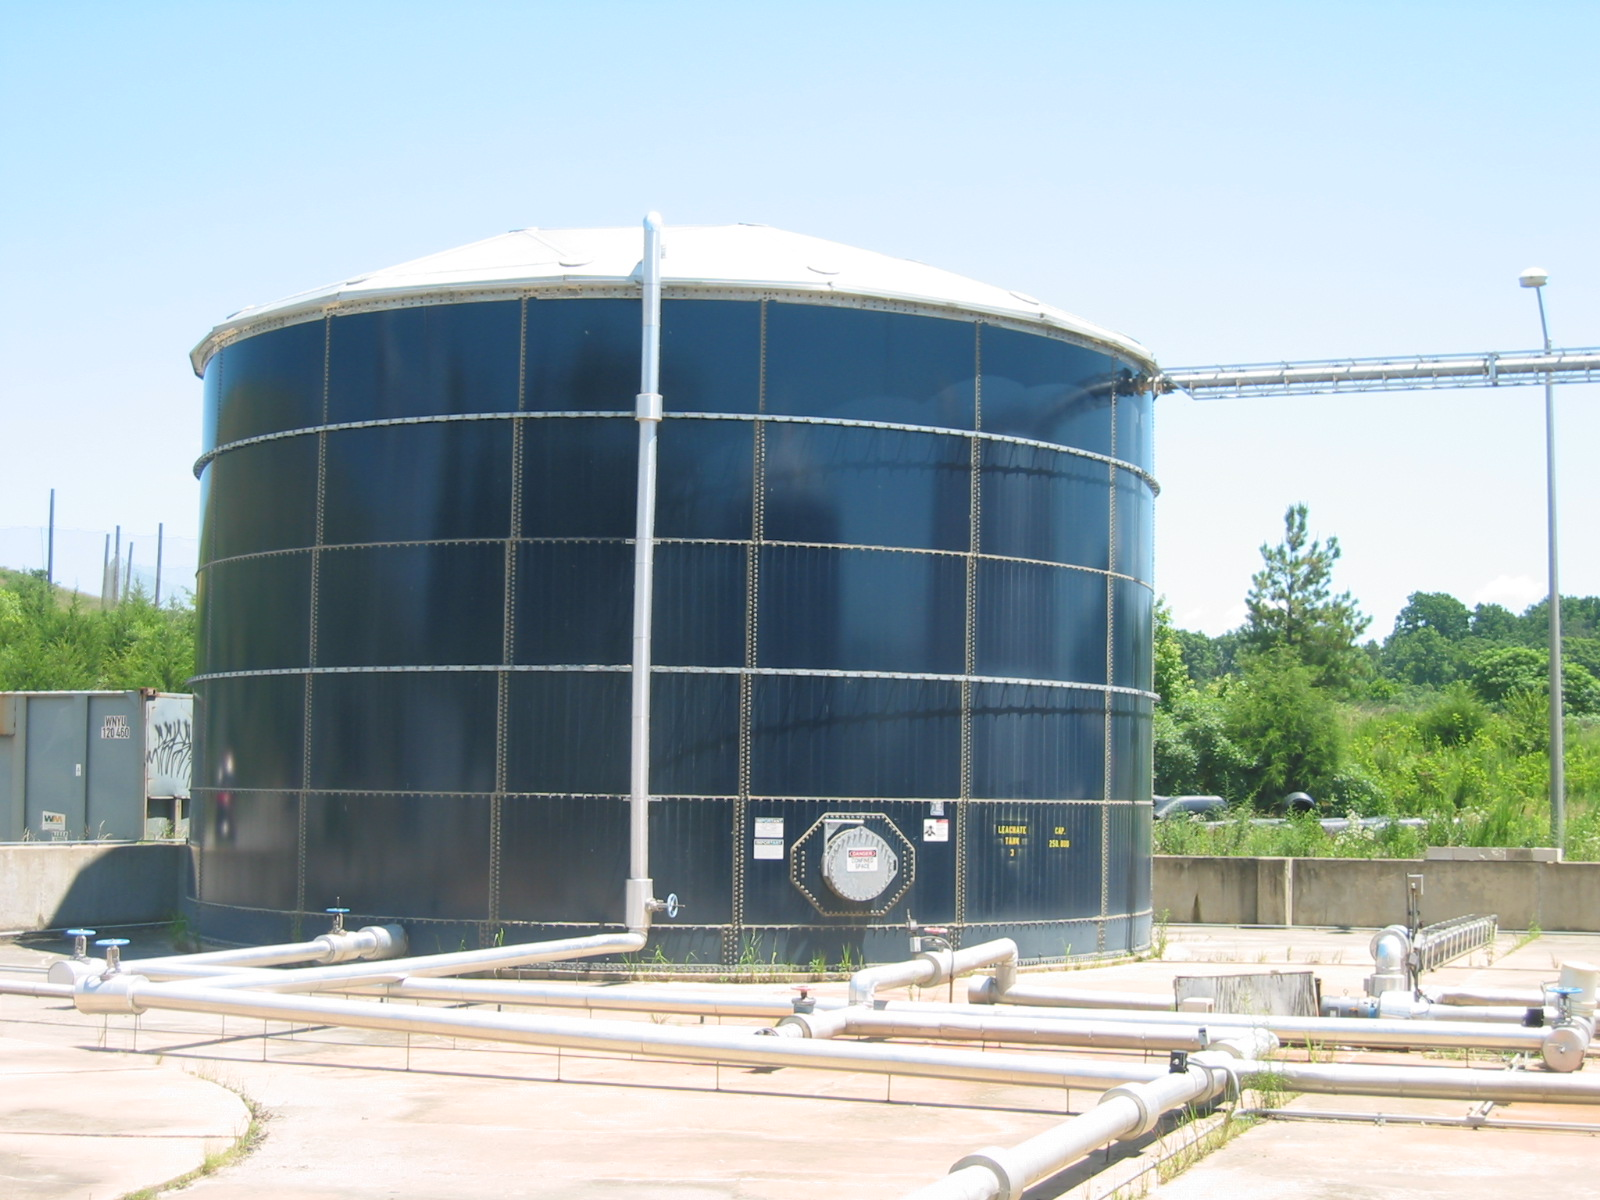 ep aeration designs tank aeration systems for a variety of applications including removal of iron manganese and hydrogen sulfide in drinking water and